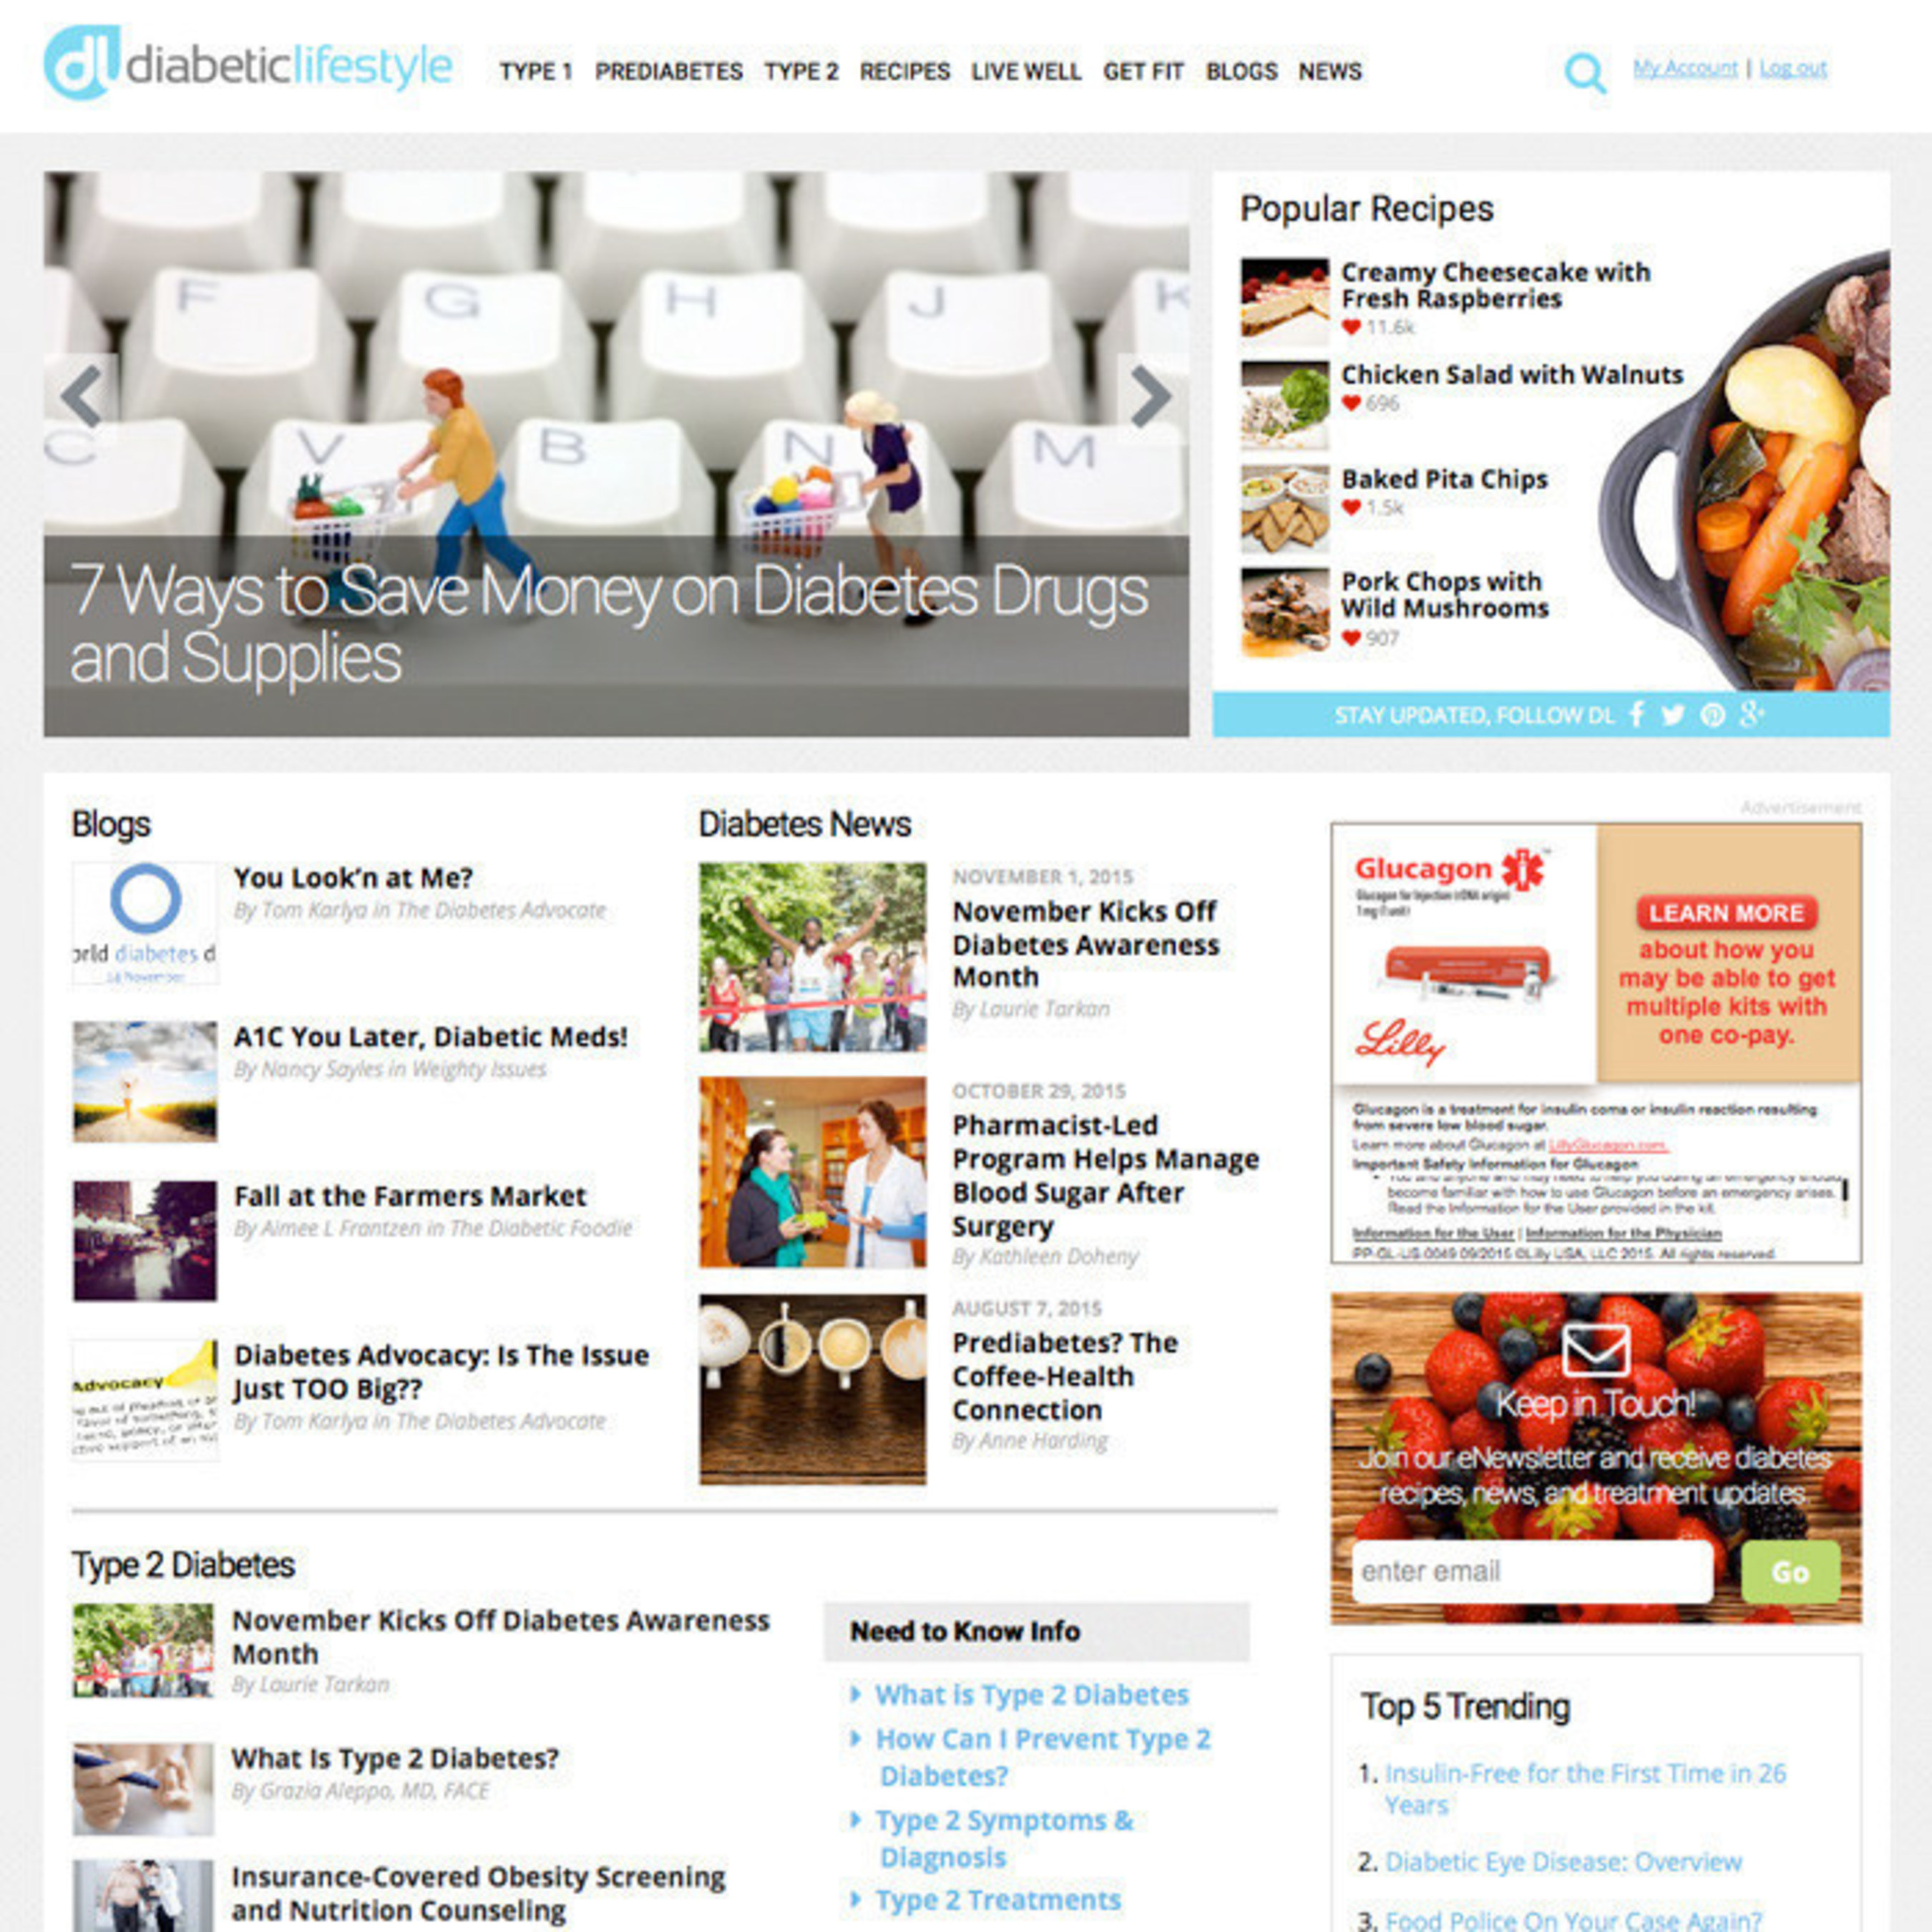 DiabeticLifestyle.com Relaunches During Diabetes Awareness Month; Expands Health Coverage and